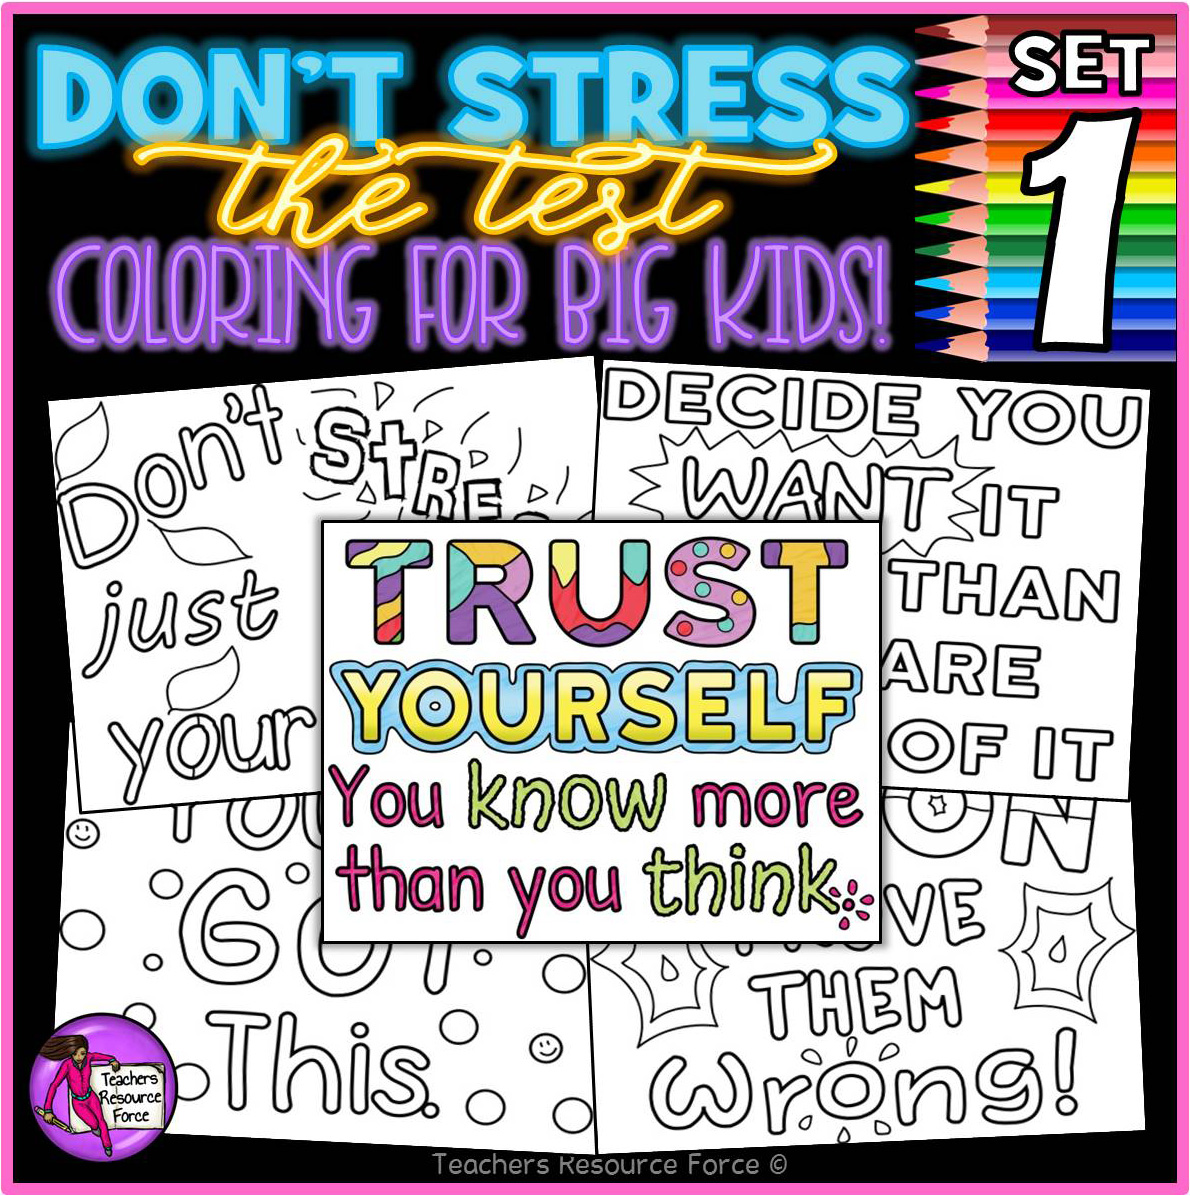 Growth Mindset Colouring Pages Posters Don T Stress The Test 1 Testing Motivation Shop